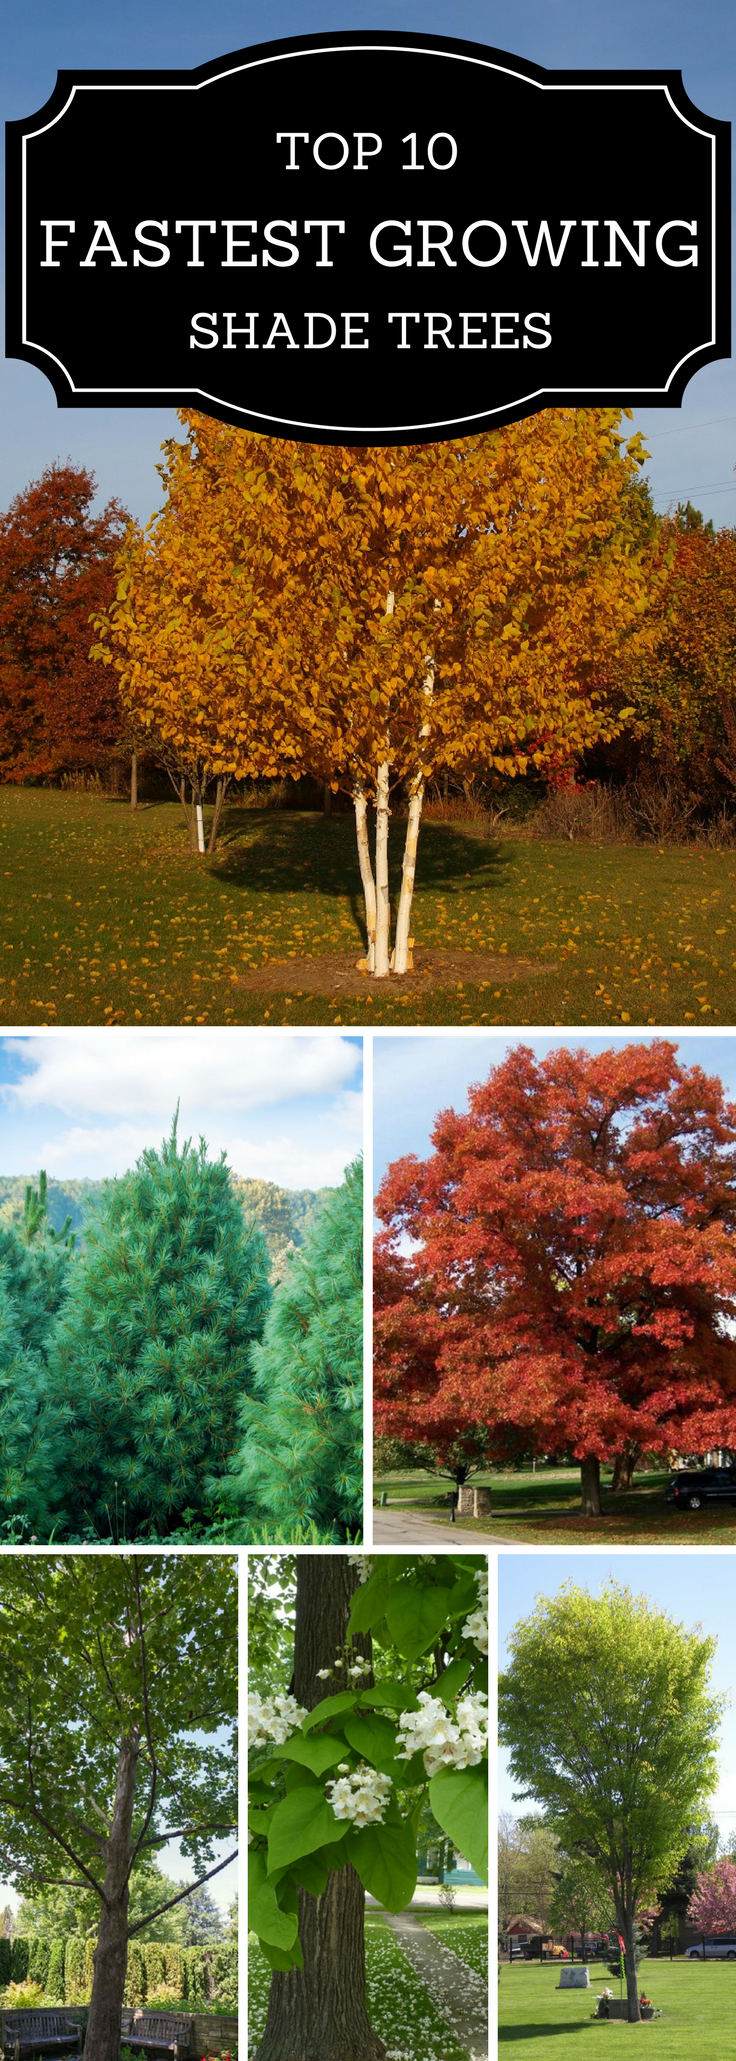 TOP 10 Fastest Growing Shade Trees | Fast growing shade ...